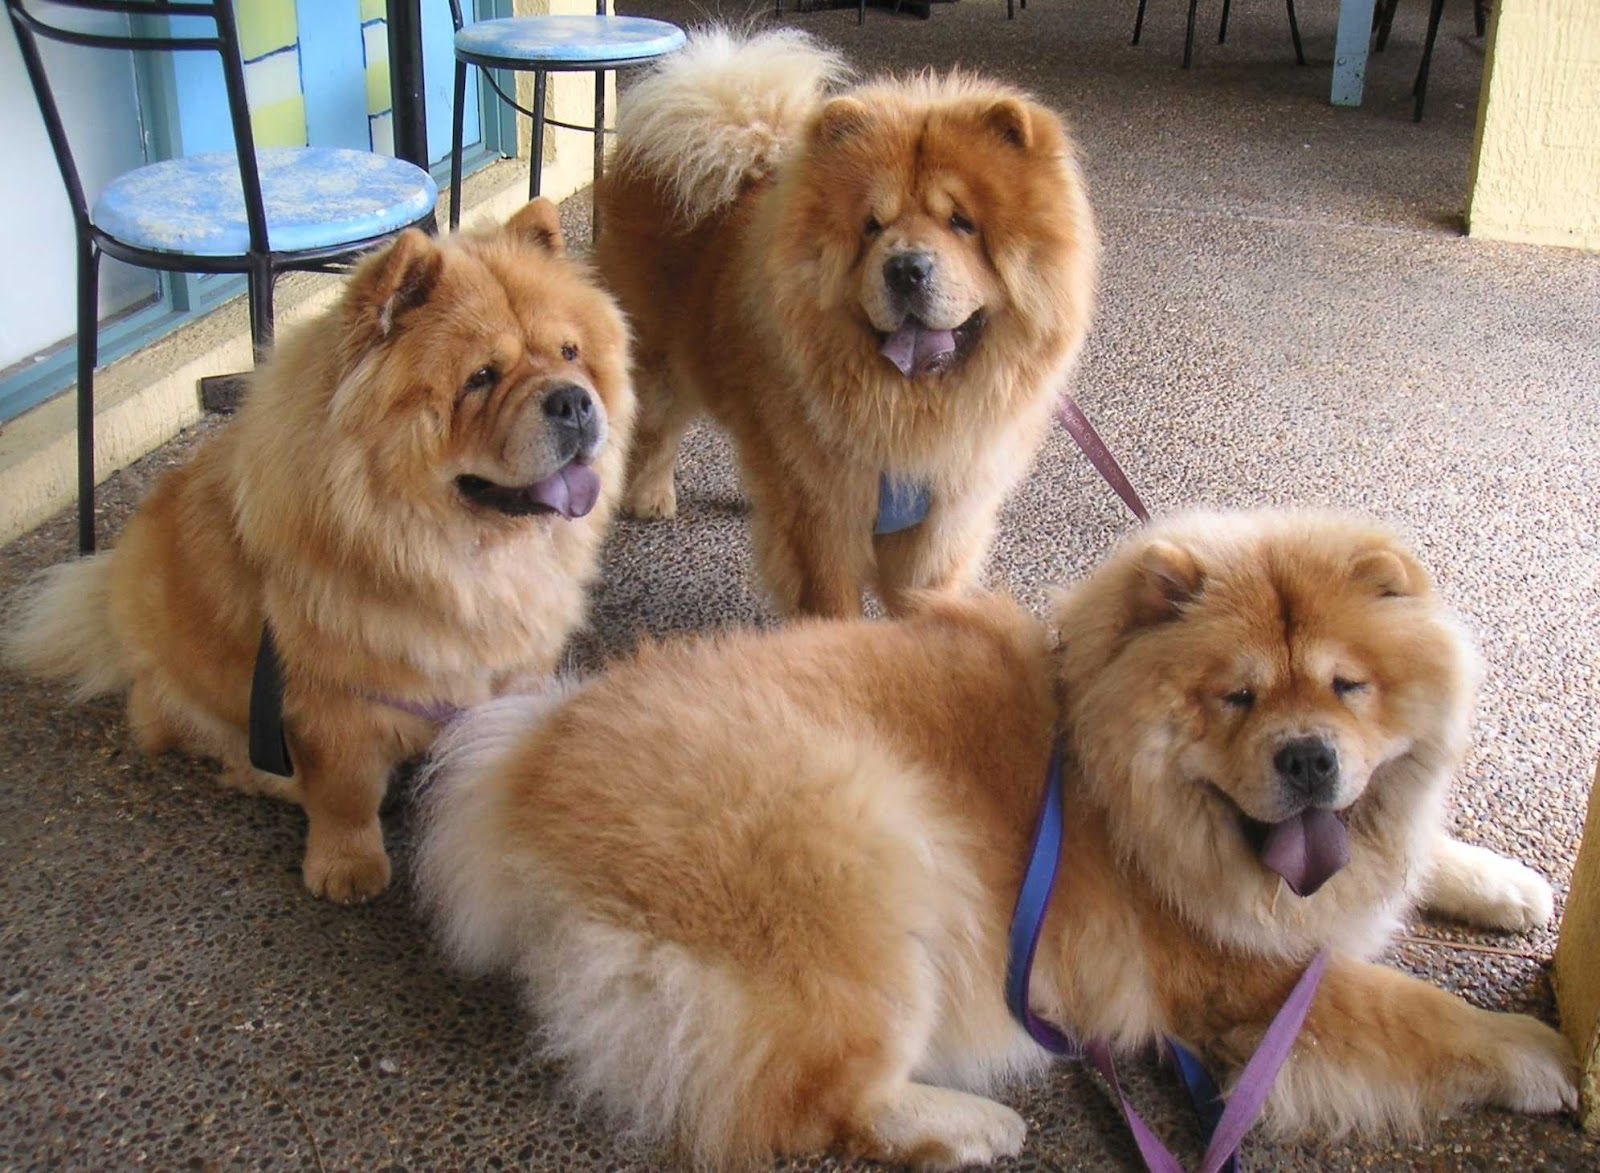 Chow Chow Dogs All Buddies Chow Chow Dogs Chow Chow Dog Puppy